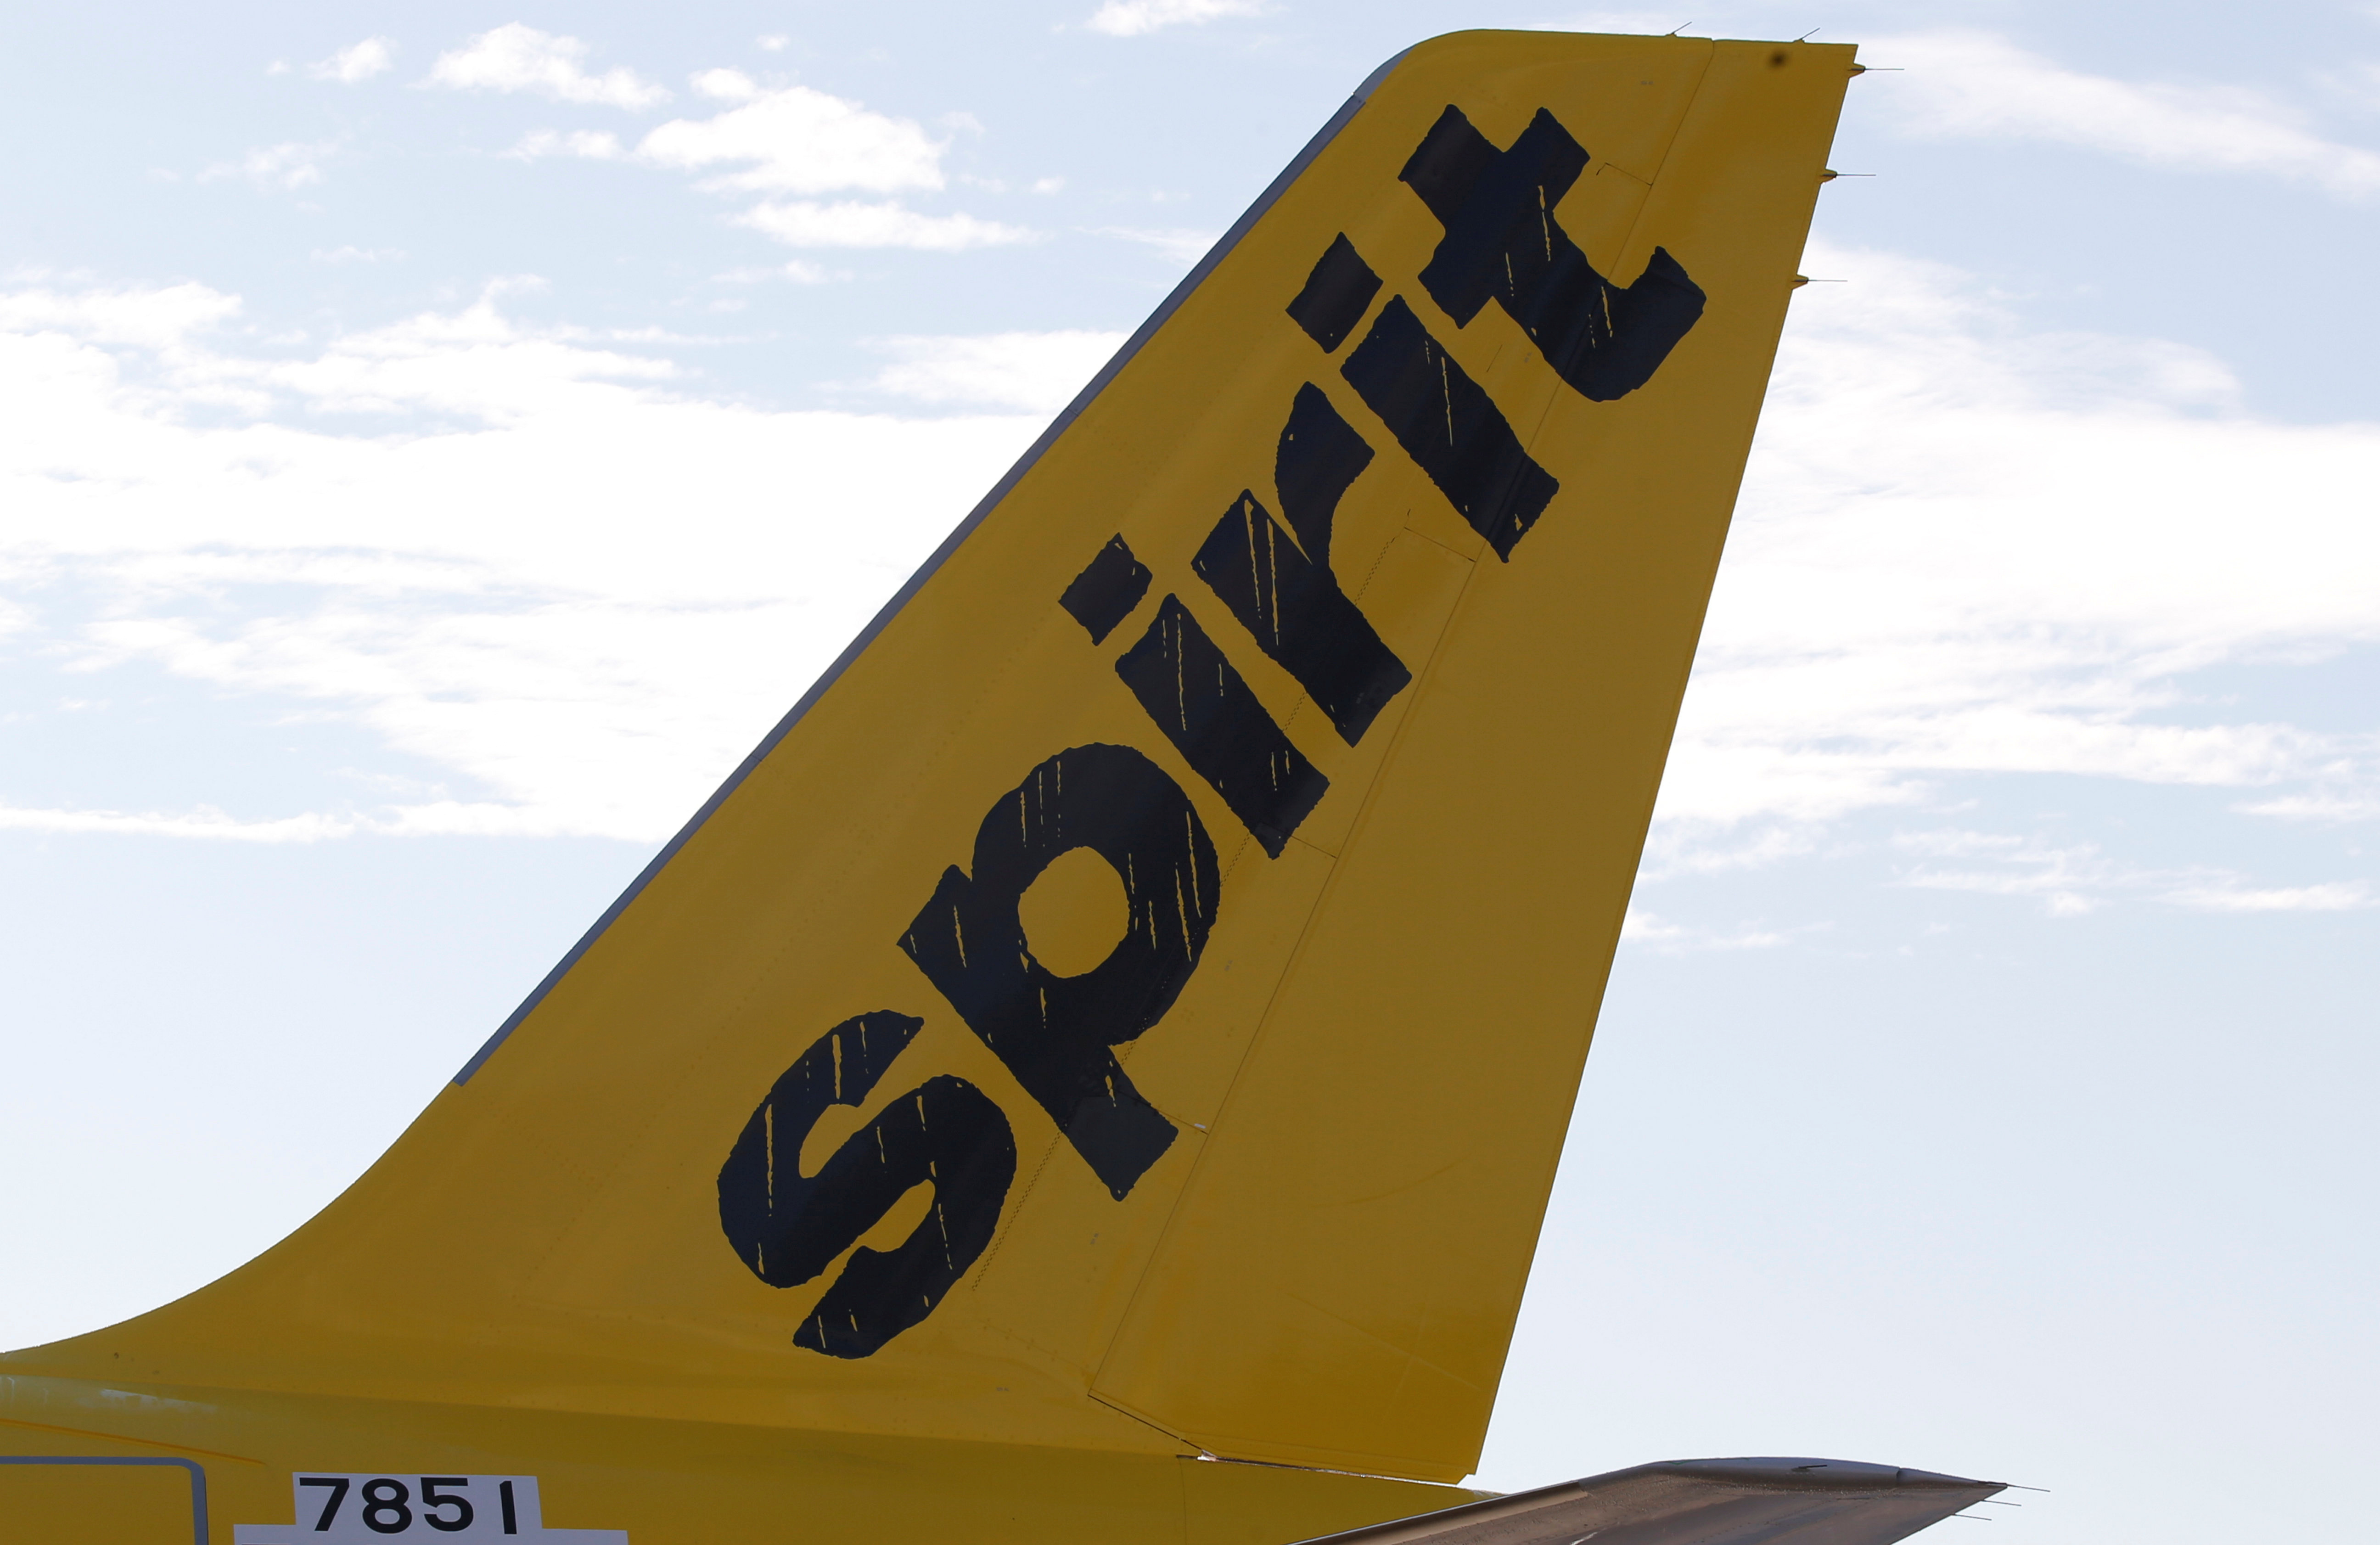 A logo of low cost carrier Spirit Airlines is pictured on an Airbus plane in Colomiers near Toulouse, France, November 6, 2018. (REUTERS/Regis Duvignau)